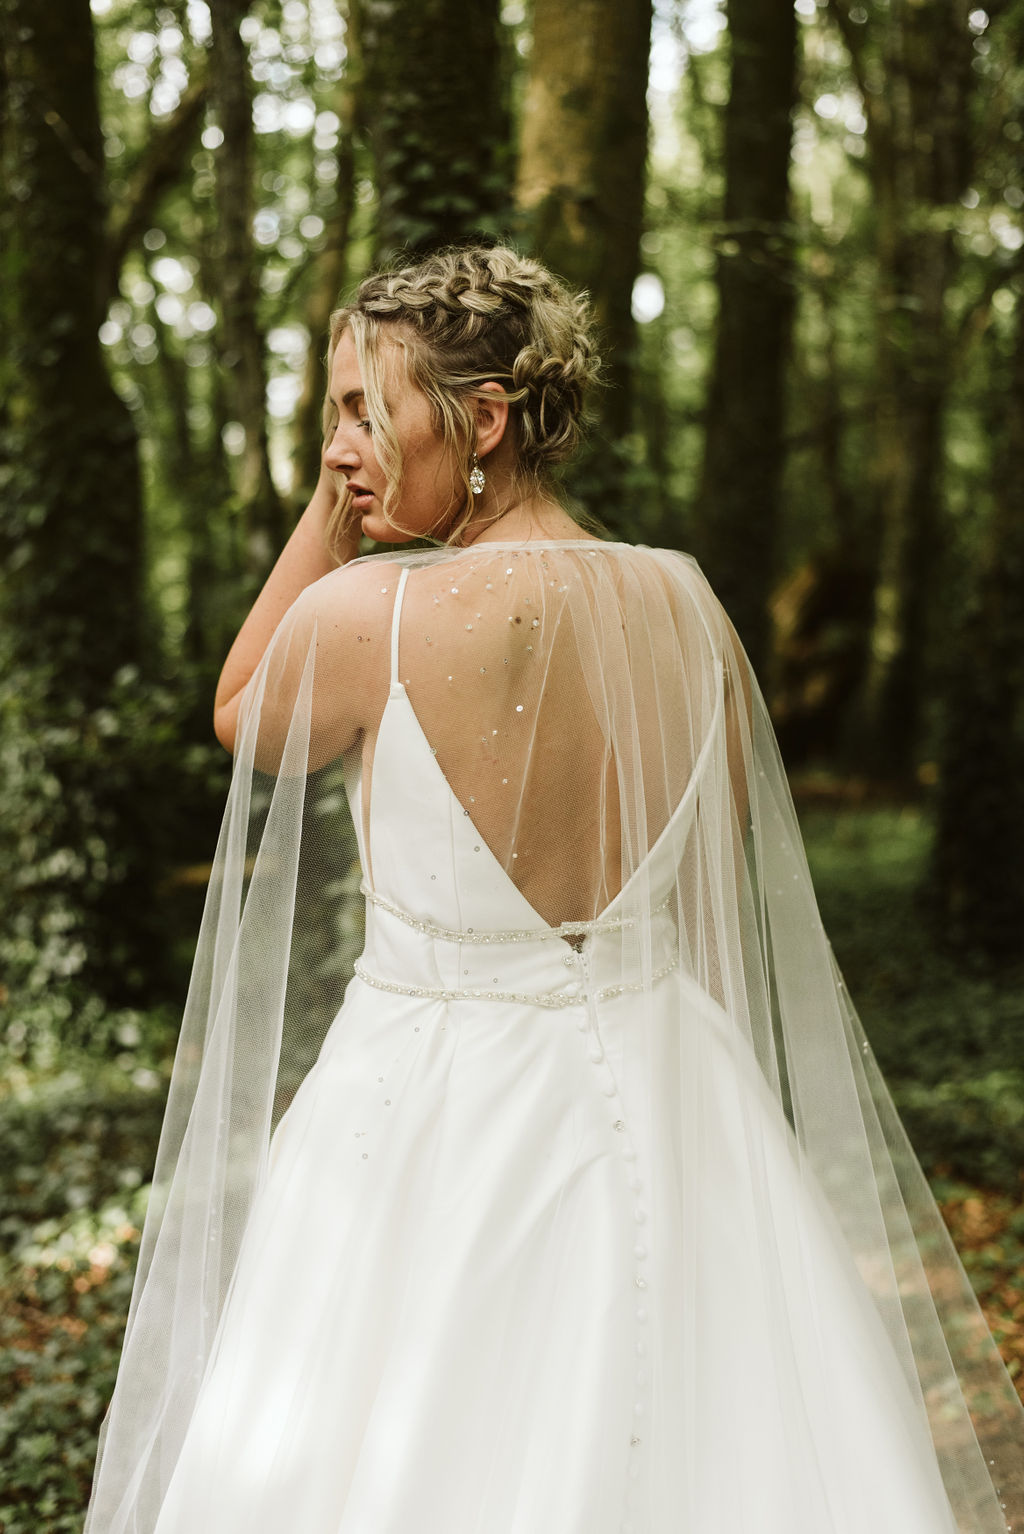 Back view of bride wearing an open back simple ballgown wedding dress with beaded waist detail and tulle bridal cape with braids in her hair